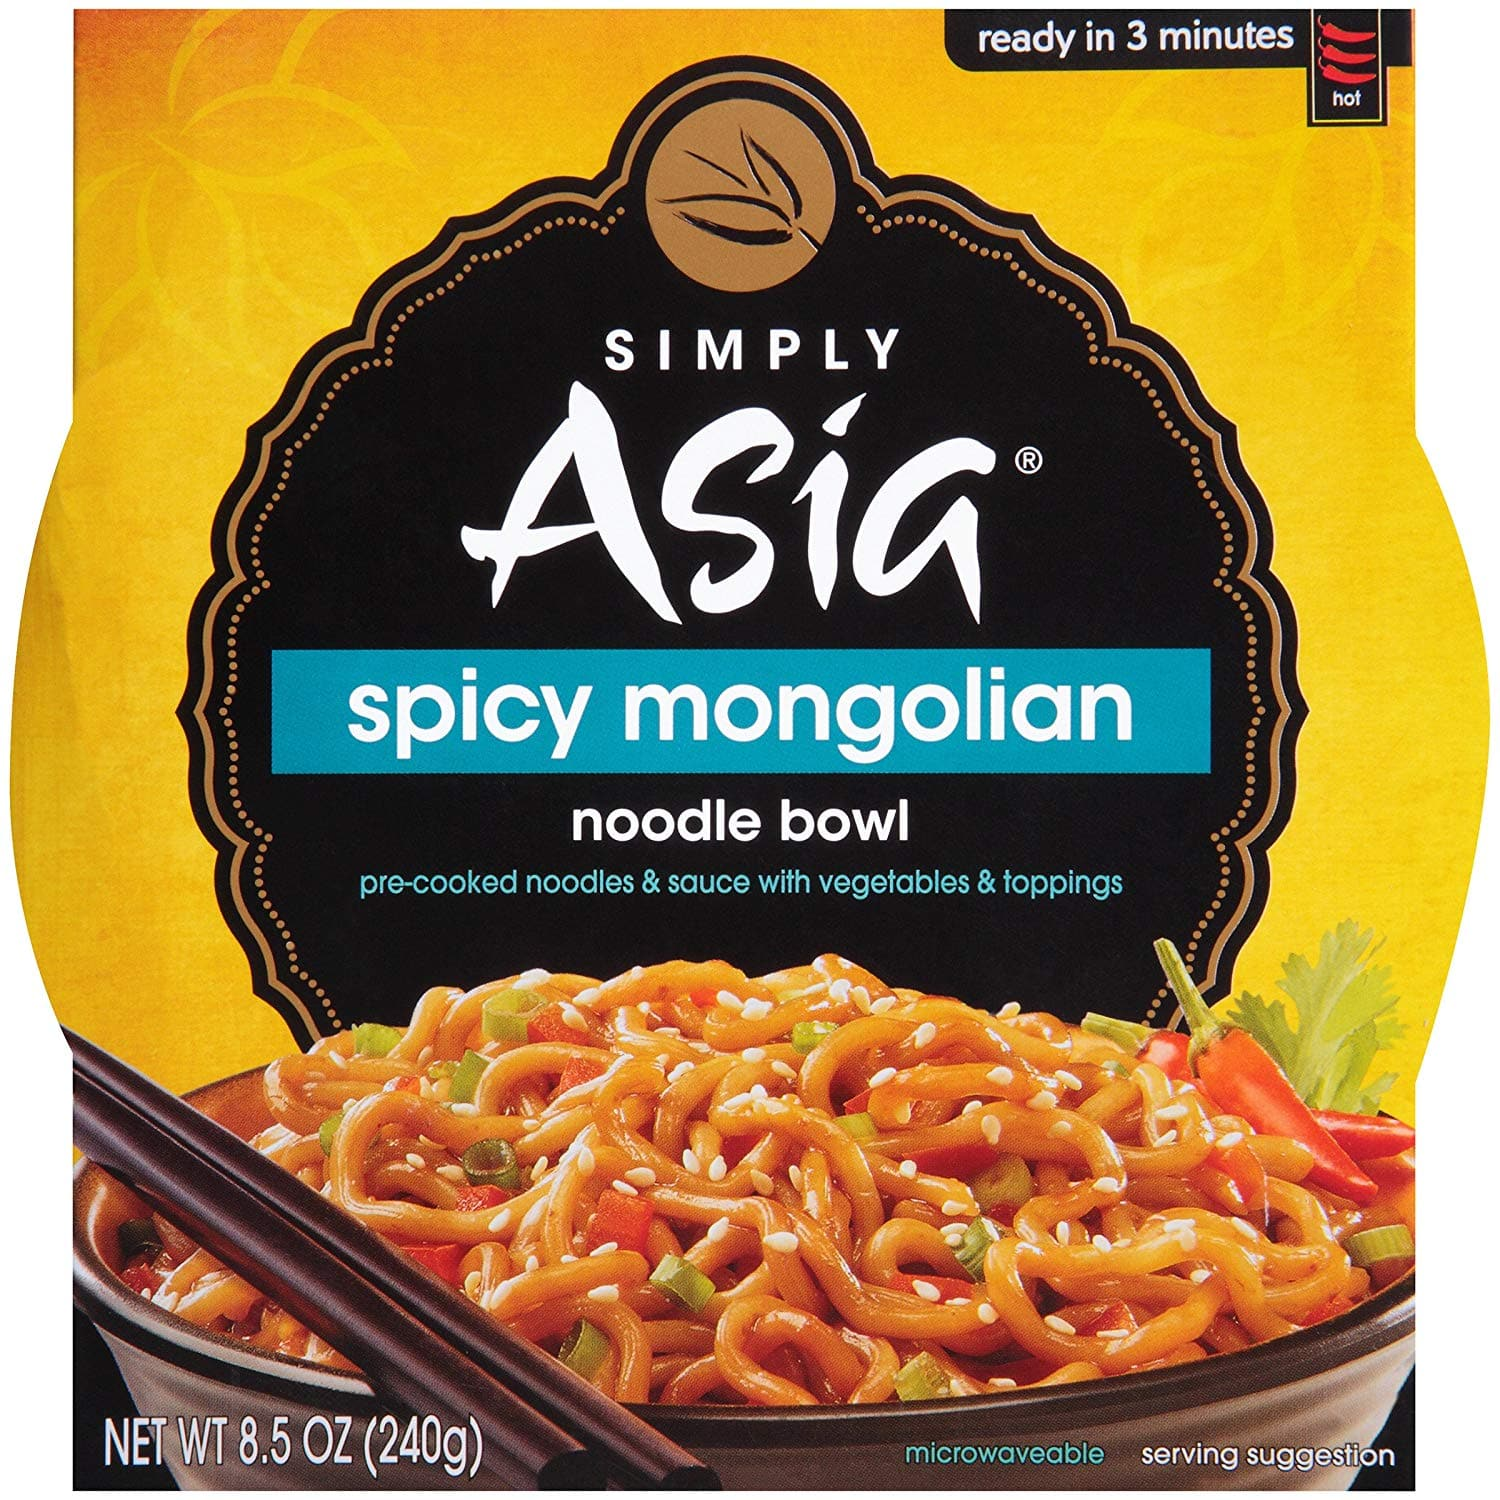 Simply Asia Spicy Mongolian Noodle Bowl, 8.5 oz (Pack of 6) for $9.28 AC and SS @ Amazon